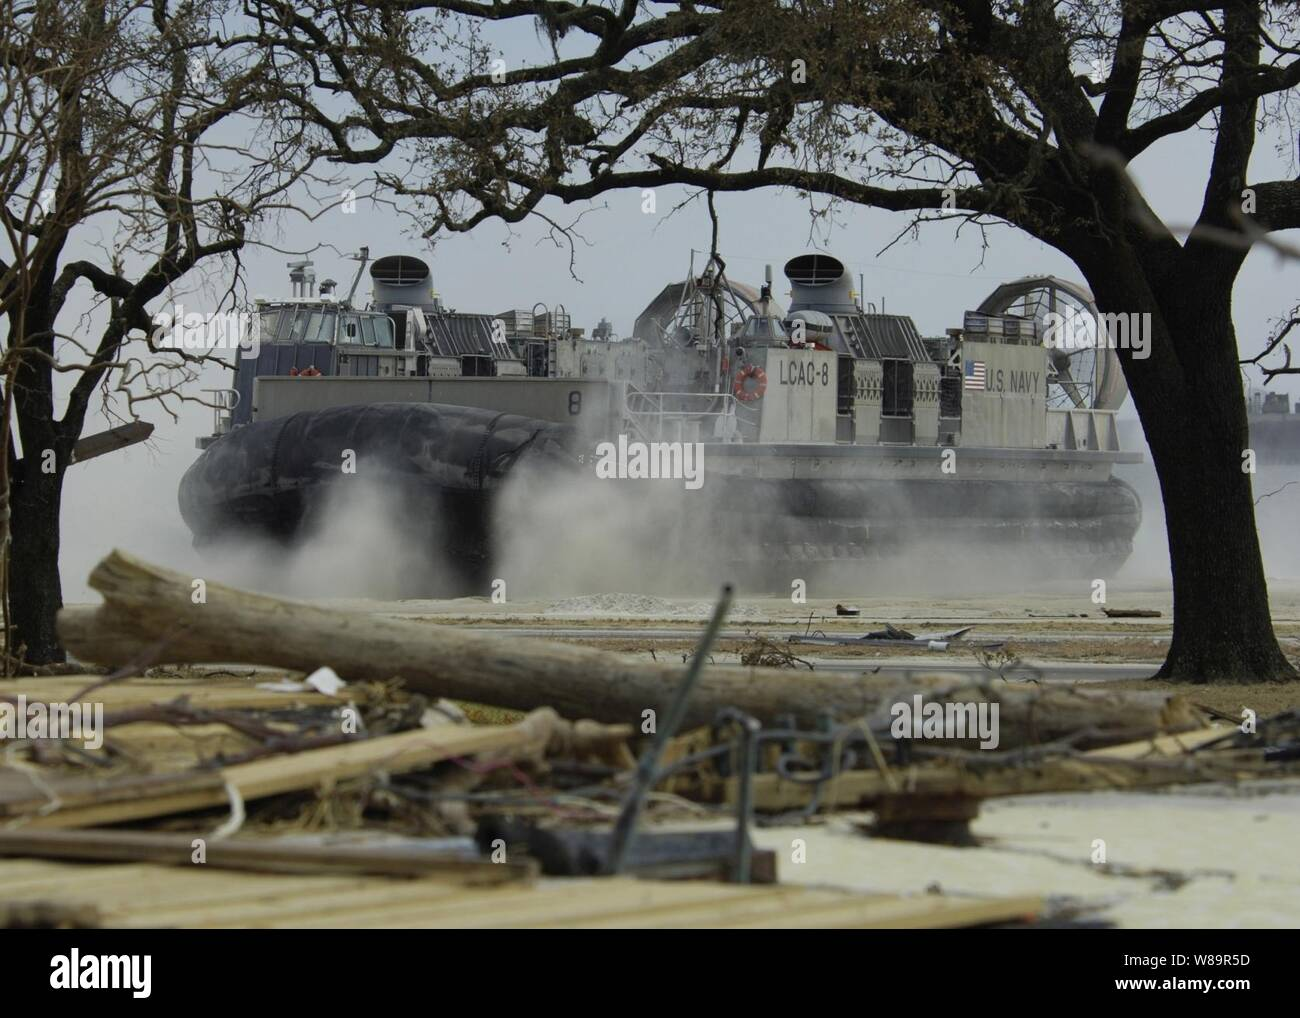 Biloxi Air Force High Resolution Stock Photography And Images Alamy